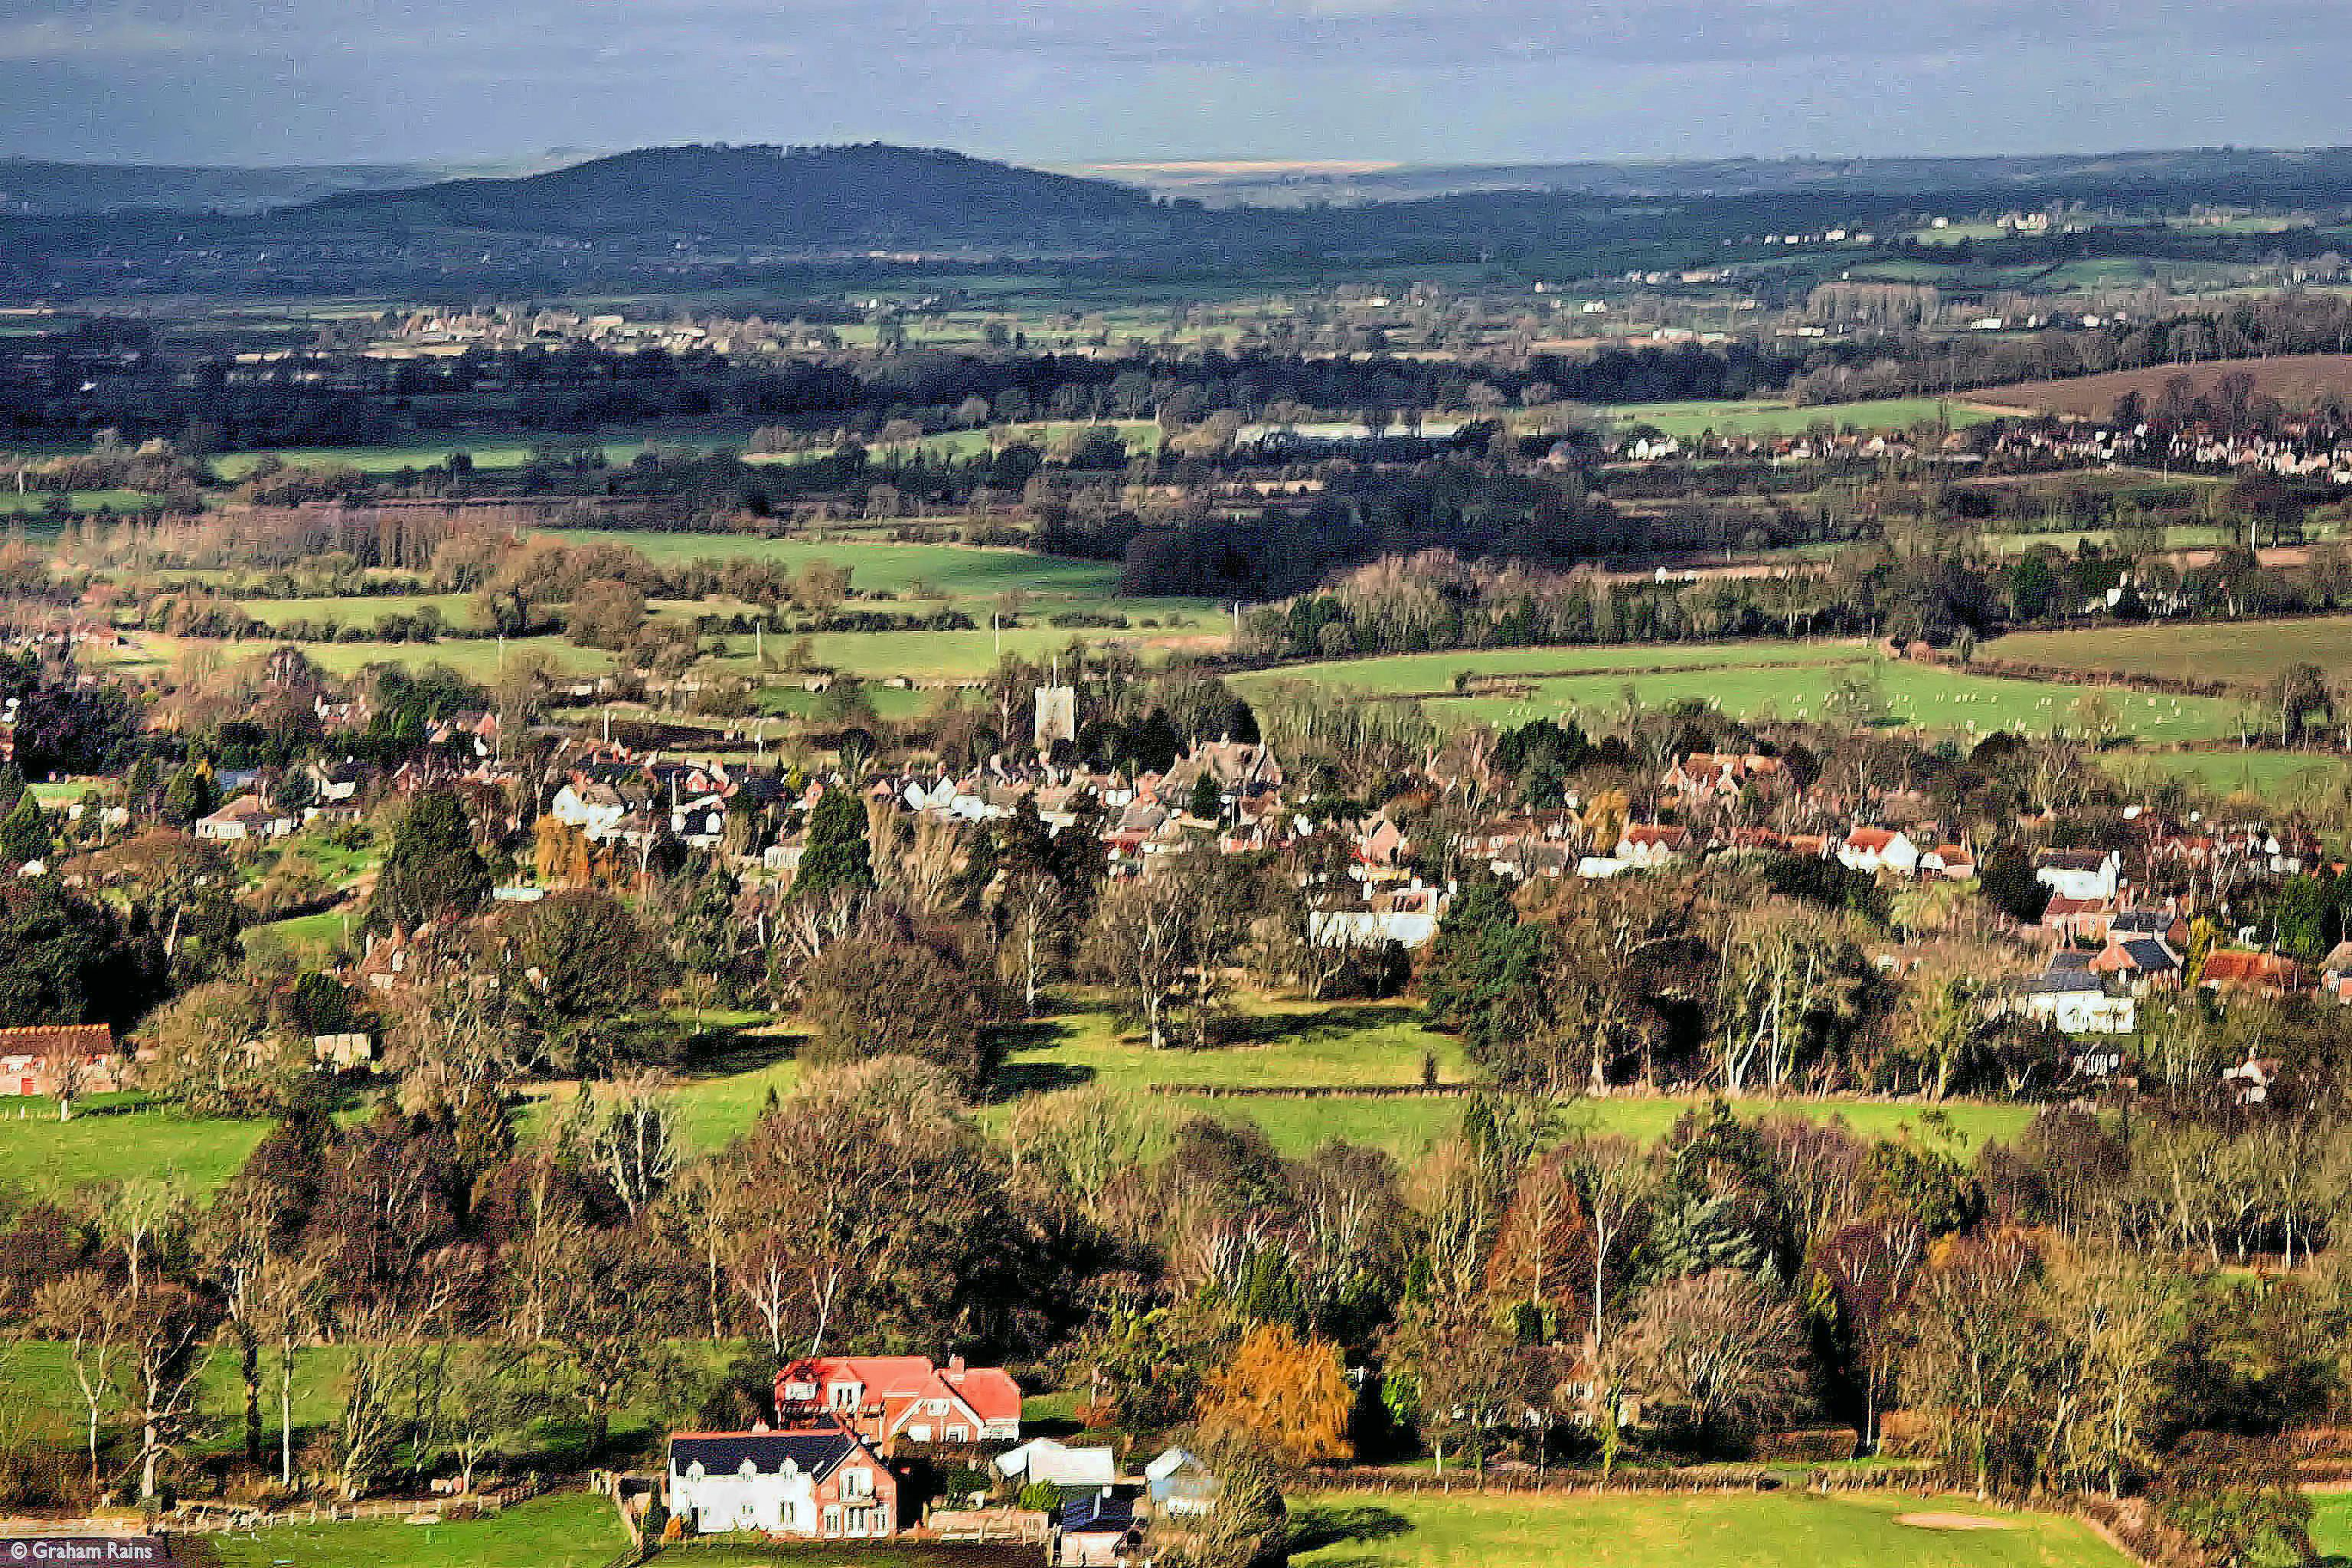 Looking over Shillingstone